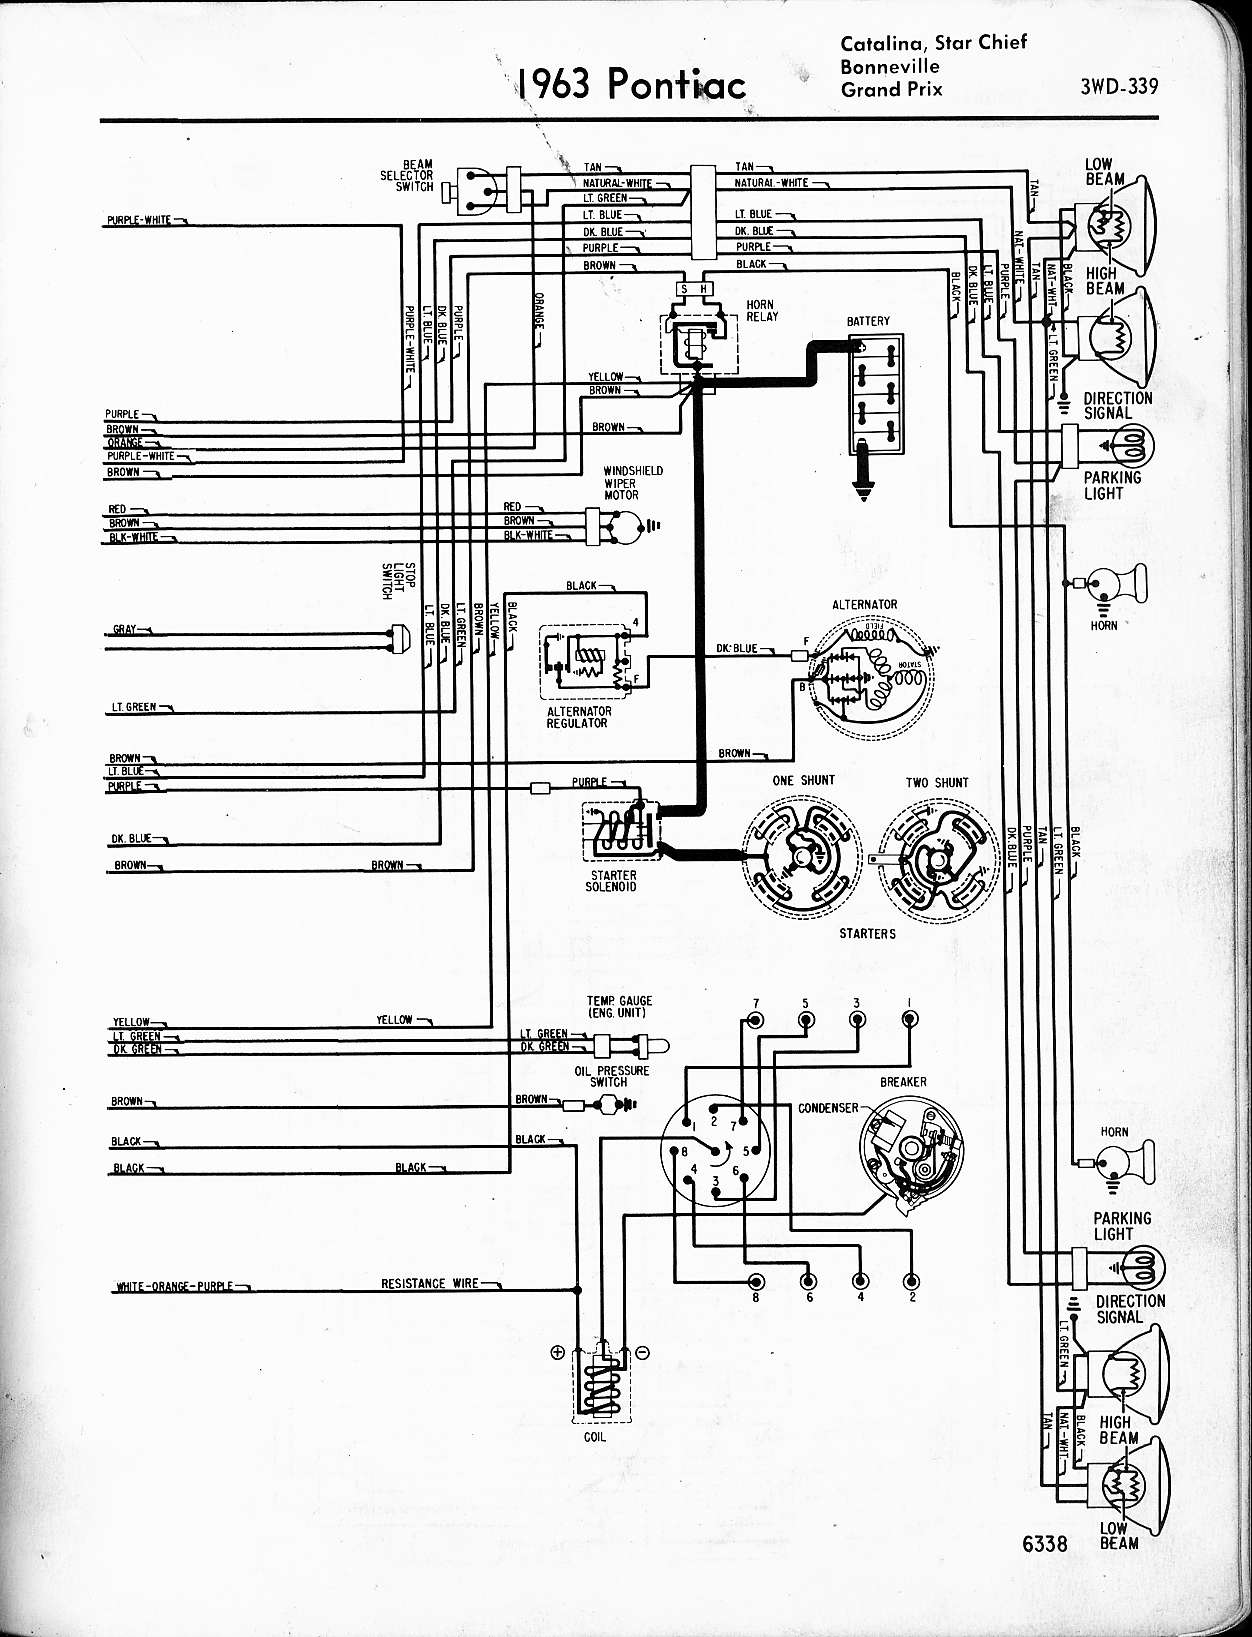 1960 pontiac wiring diagram 1960 chevy wiring diagram #11